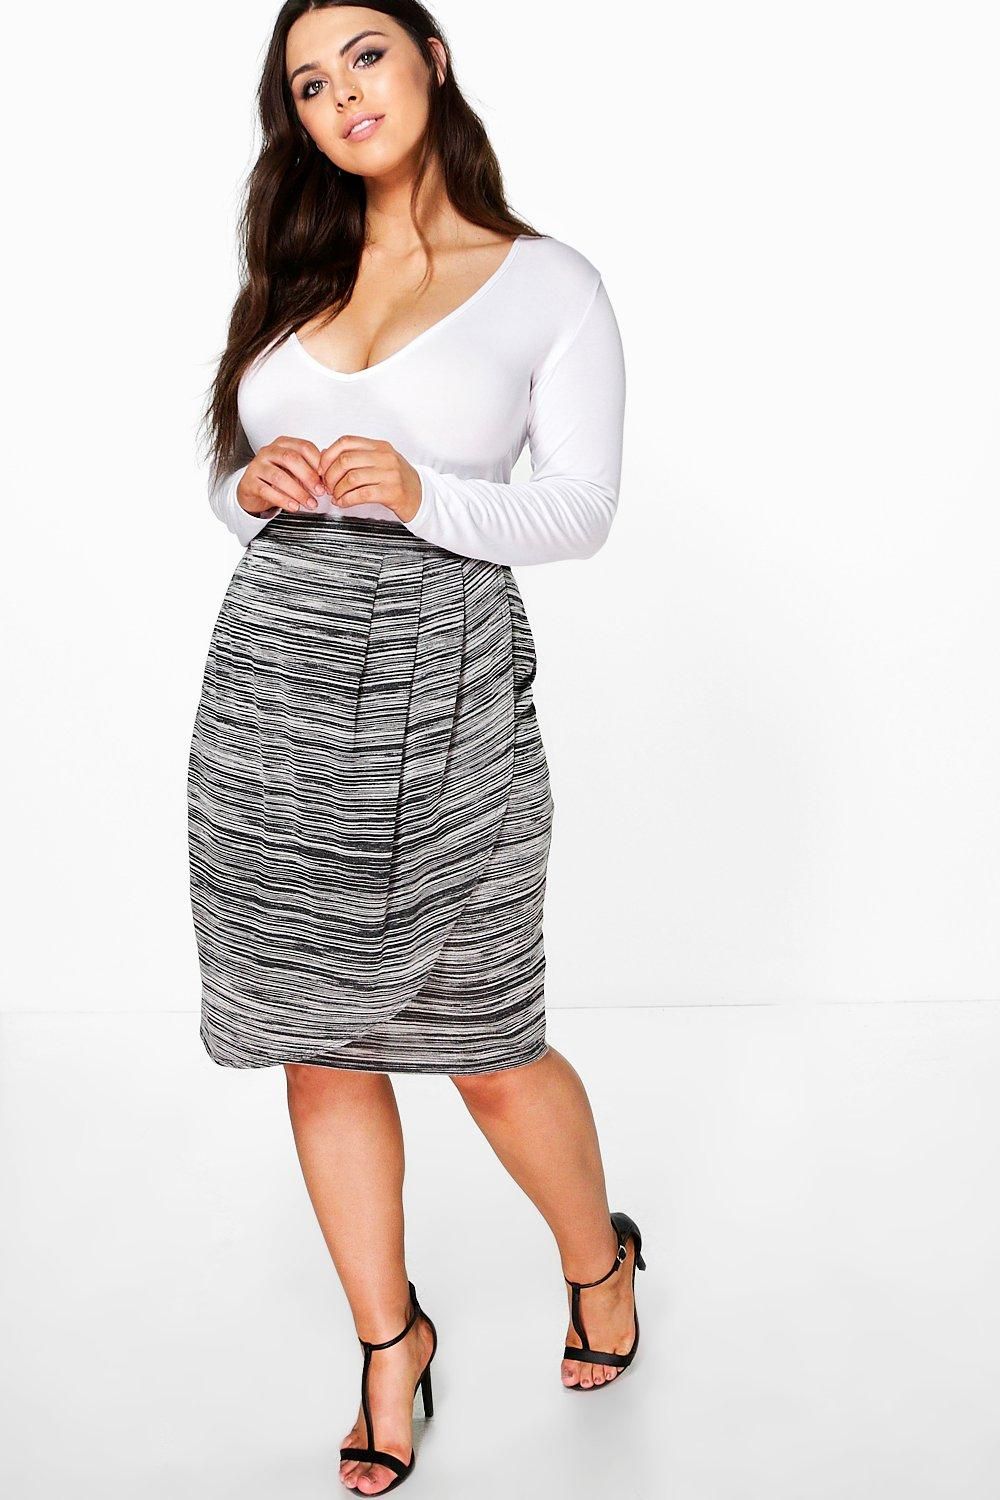 Plus Lexi Marl Knit Skirt